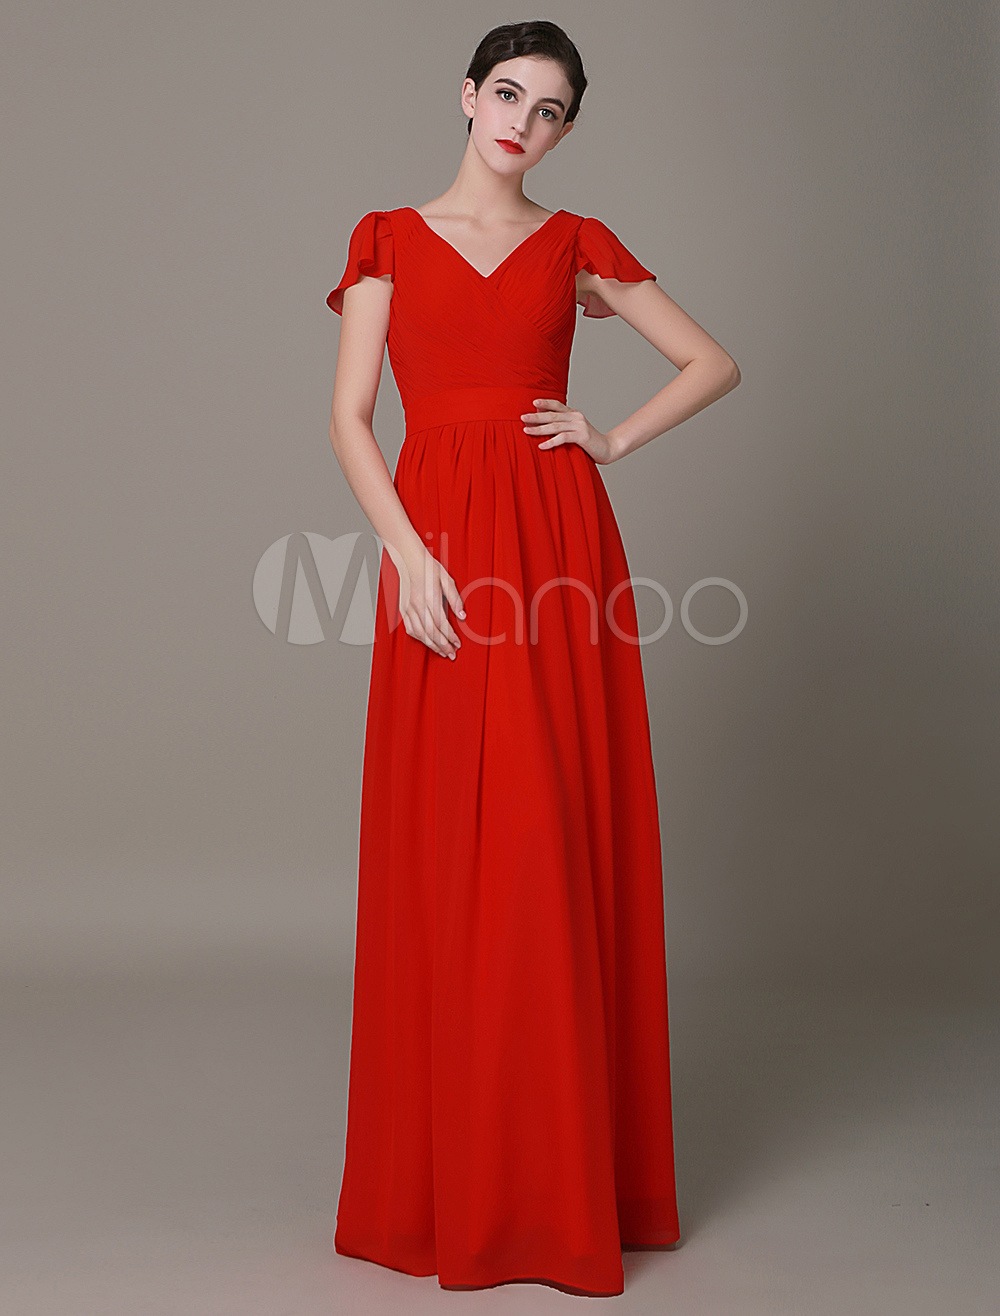 Buy V-neck Chiffon Braidsmaid Dress Petal Sleeves Pleated A-Line Chiffon Evening Dress for $119.99 in Milanoo store